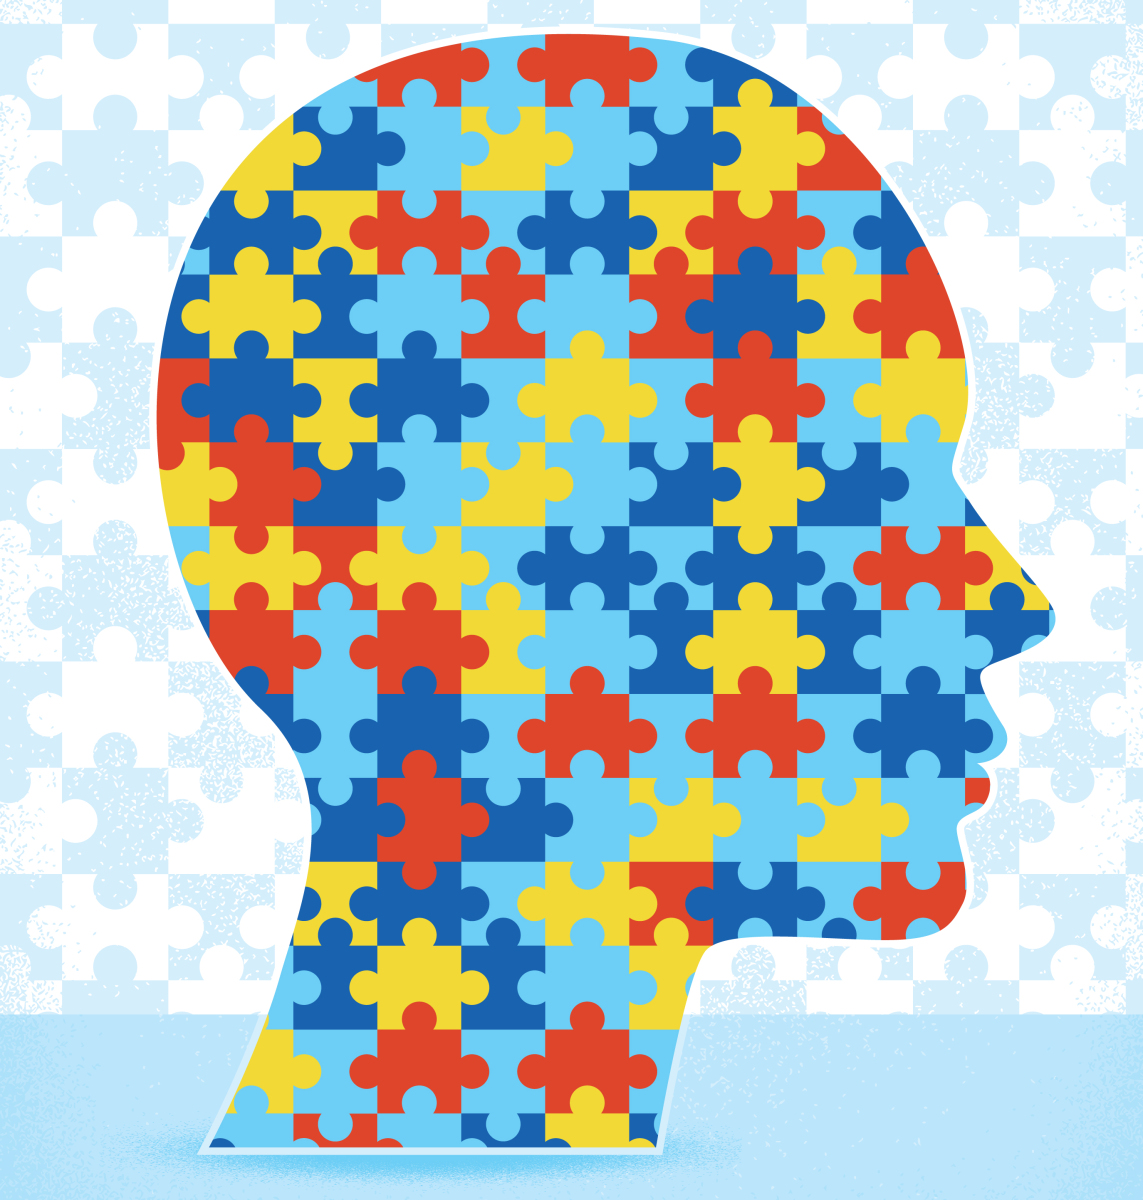 Coping with being a high functioning person on the Autism spectrum